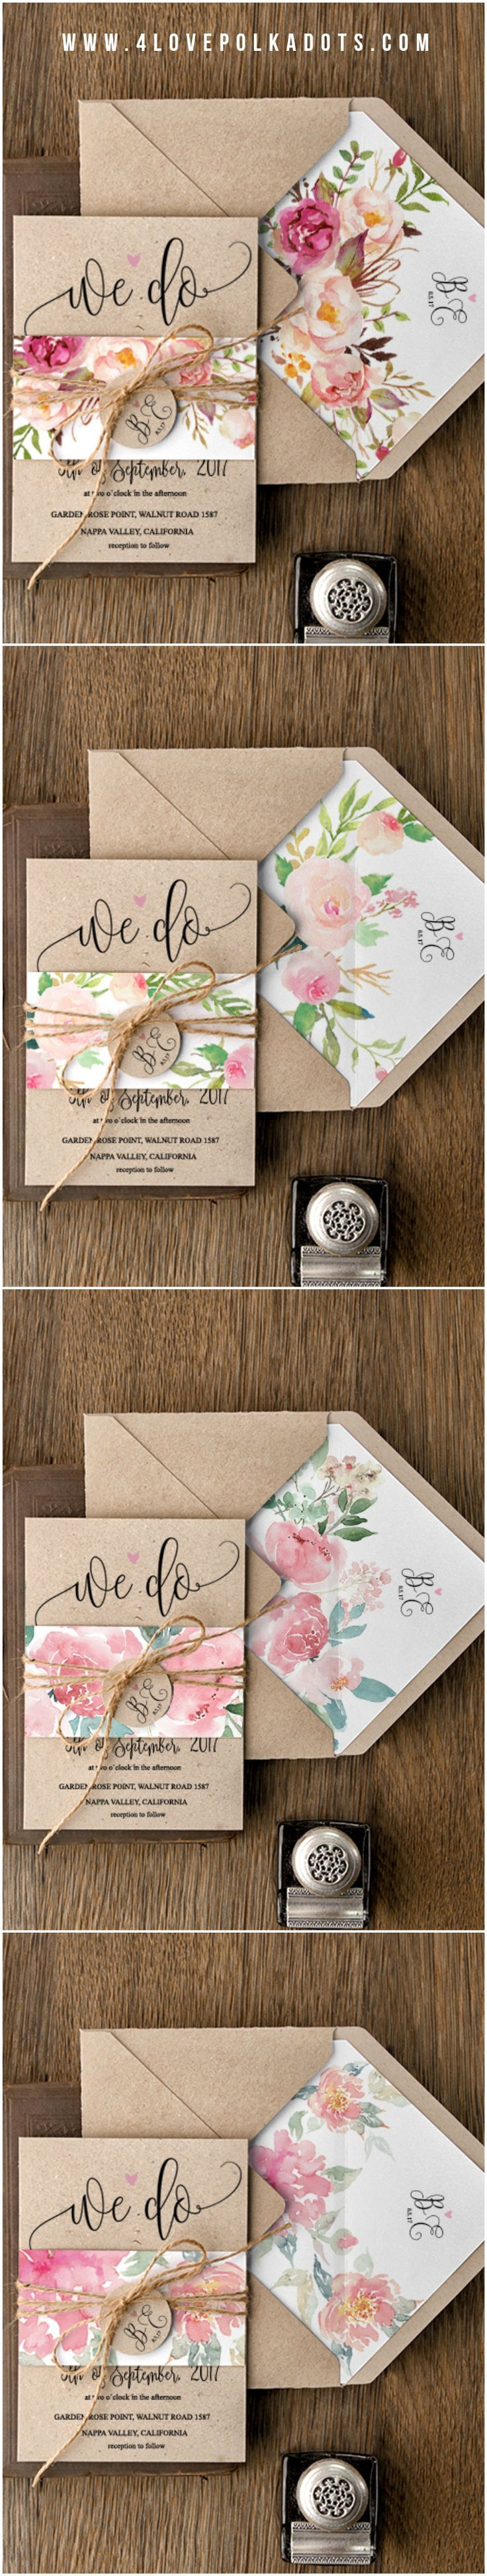 Keep this website! Most inexpensive invites I've found!